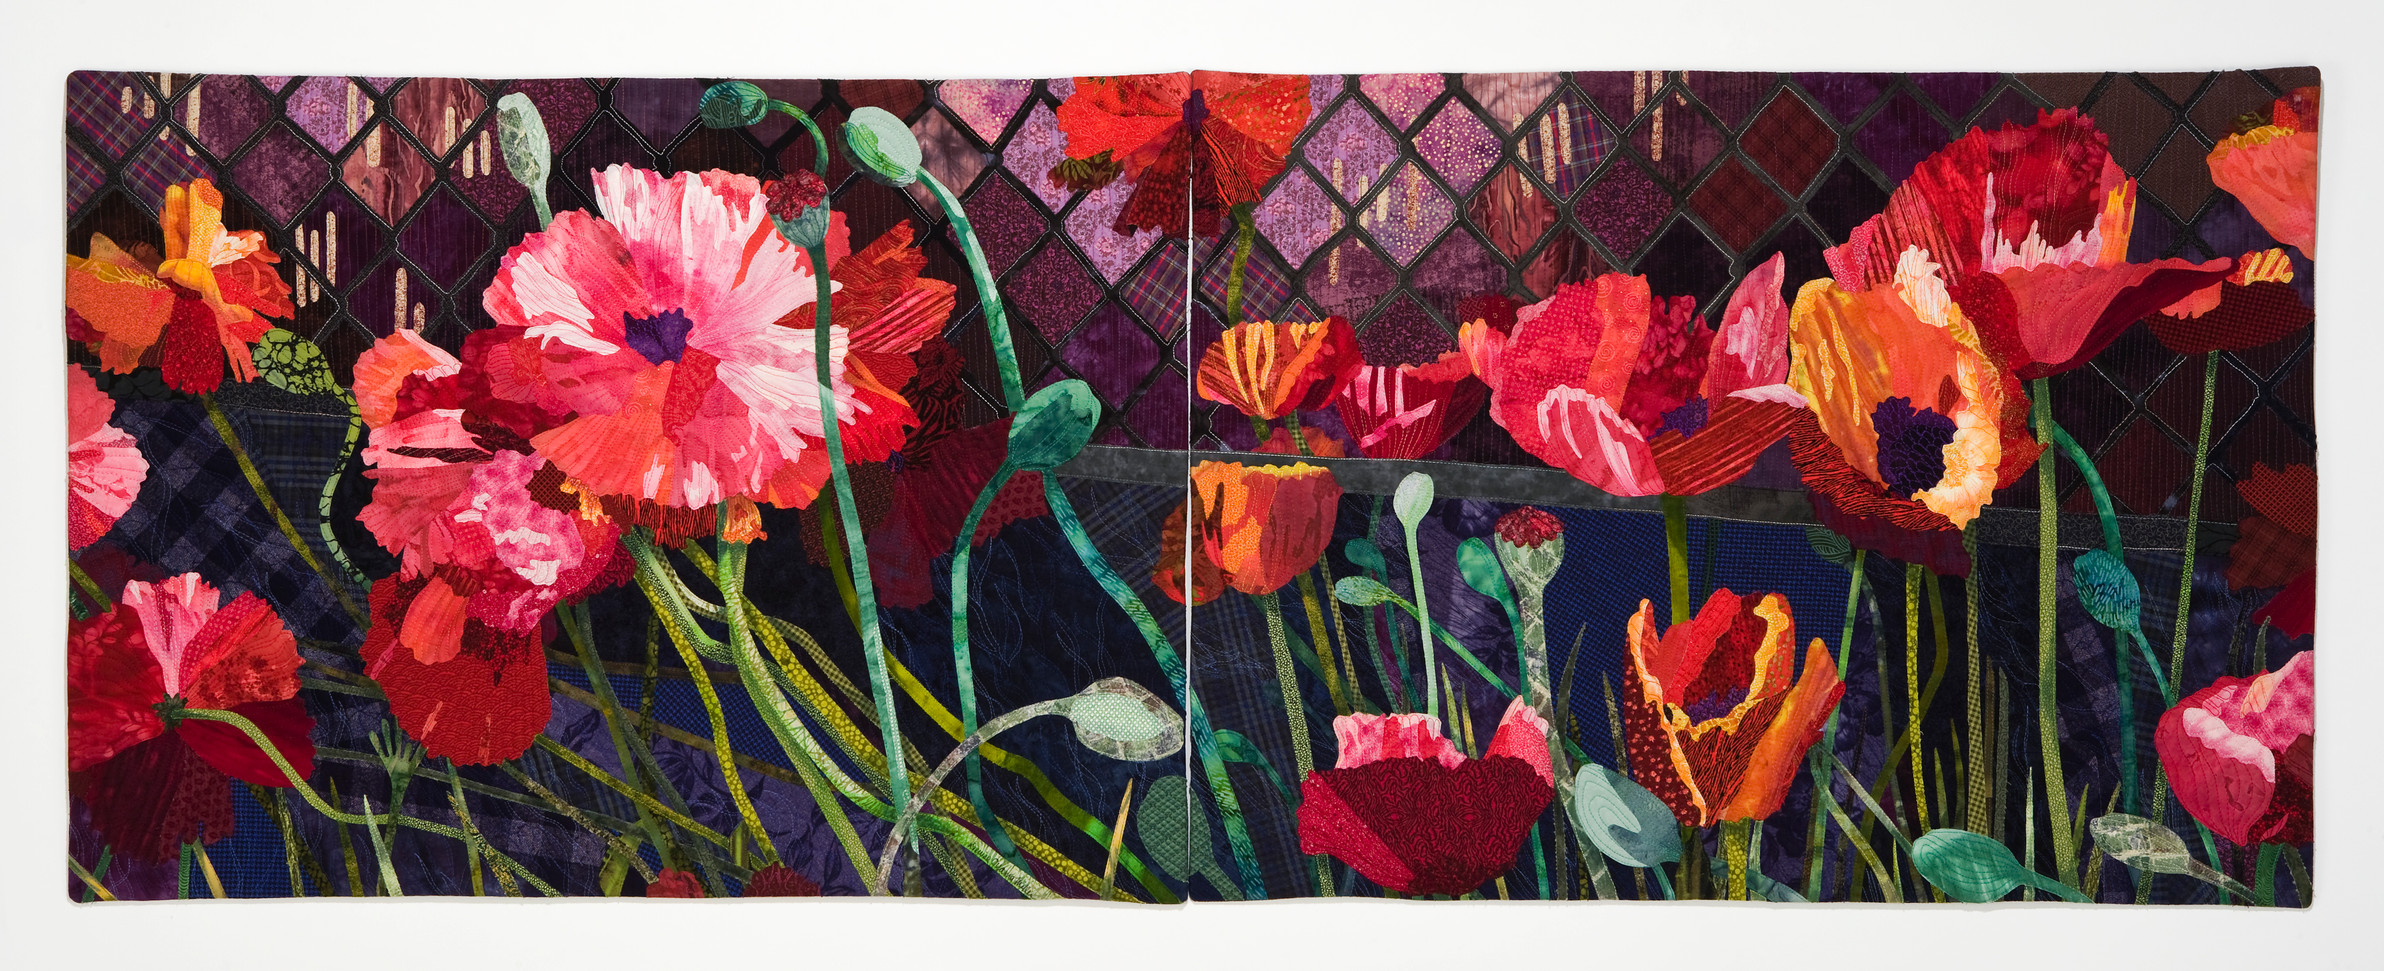 Roadside Poppies (diptych) textiles $2,370